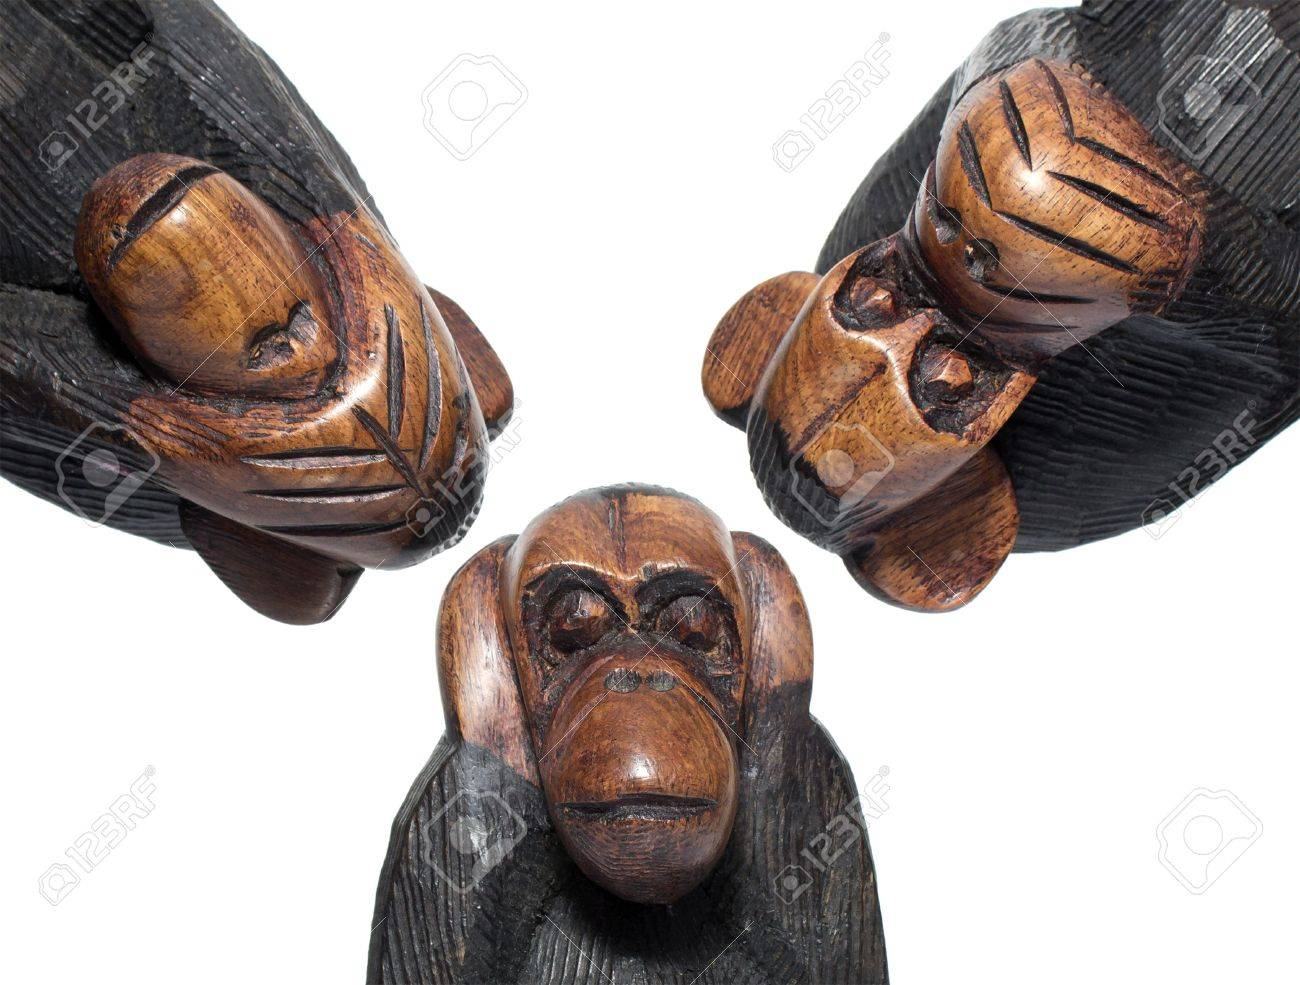 Three wooden monkeys, deaf, blind and dumb, on white background Stock Photo - 16409396